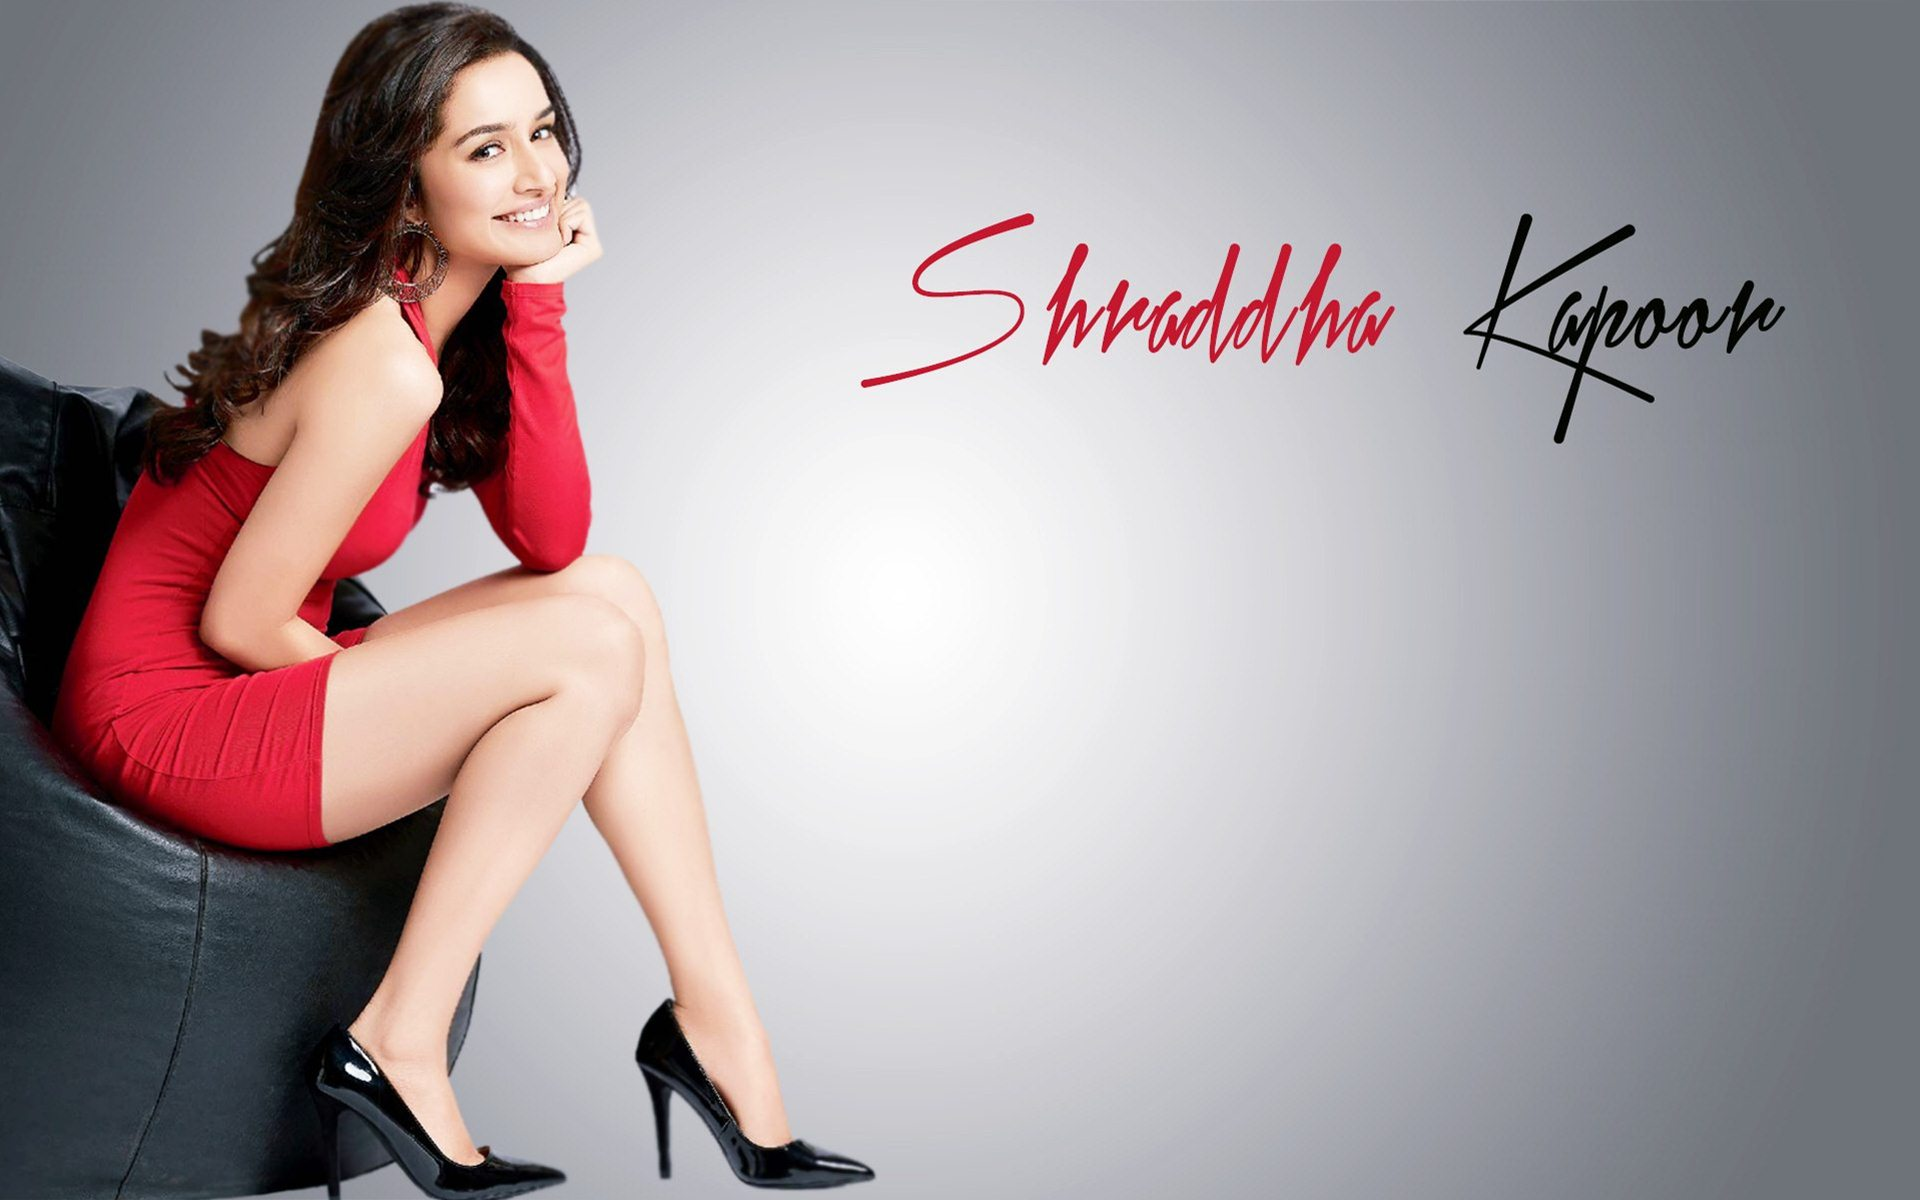 shraddha kapoor wallpaper 15833 1920x1200 px ~ hdwallsource